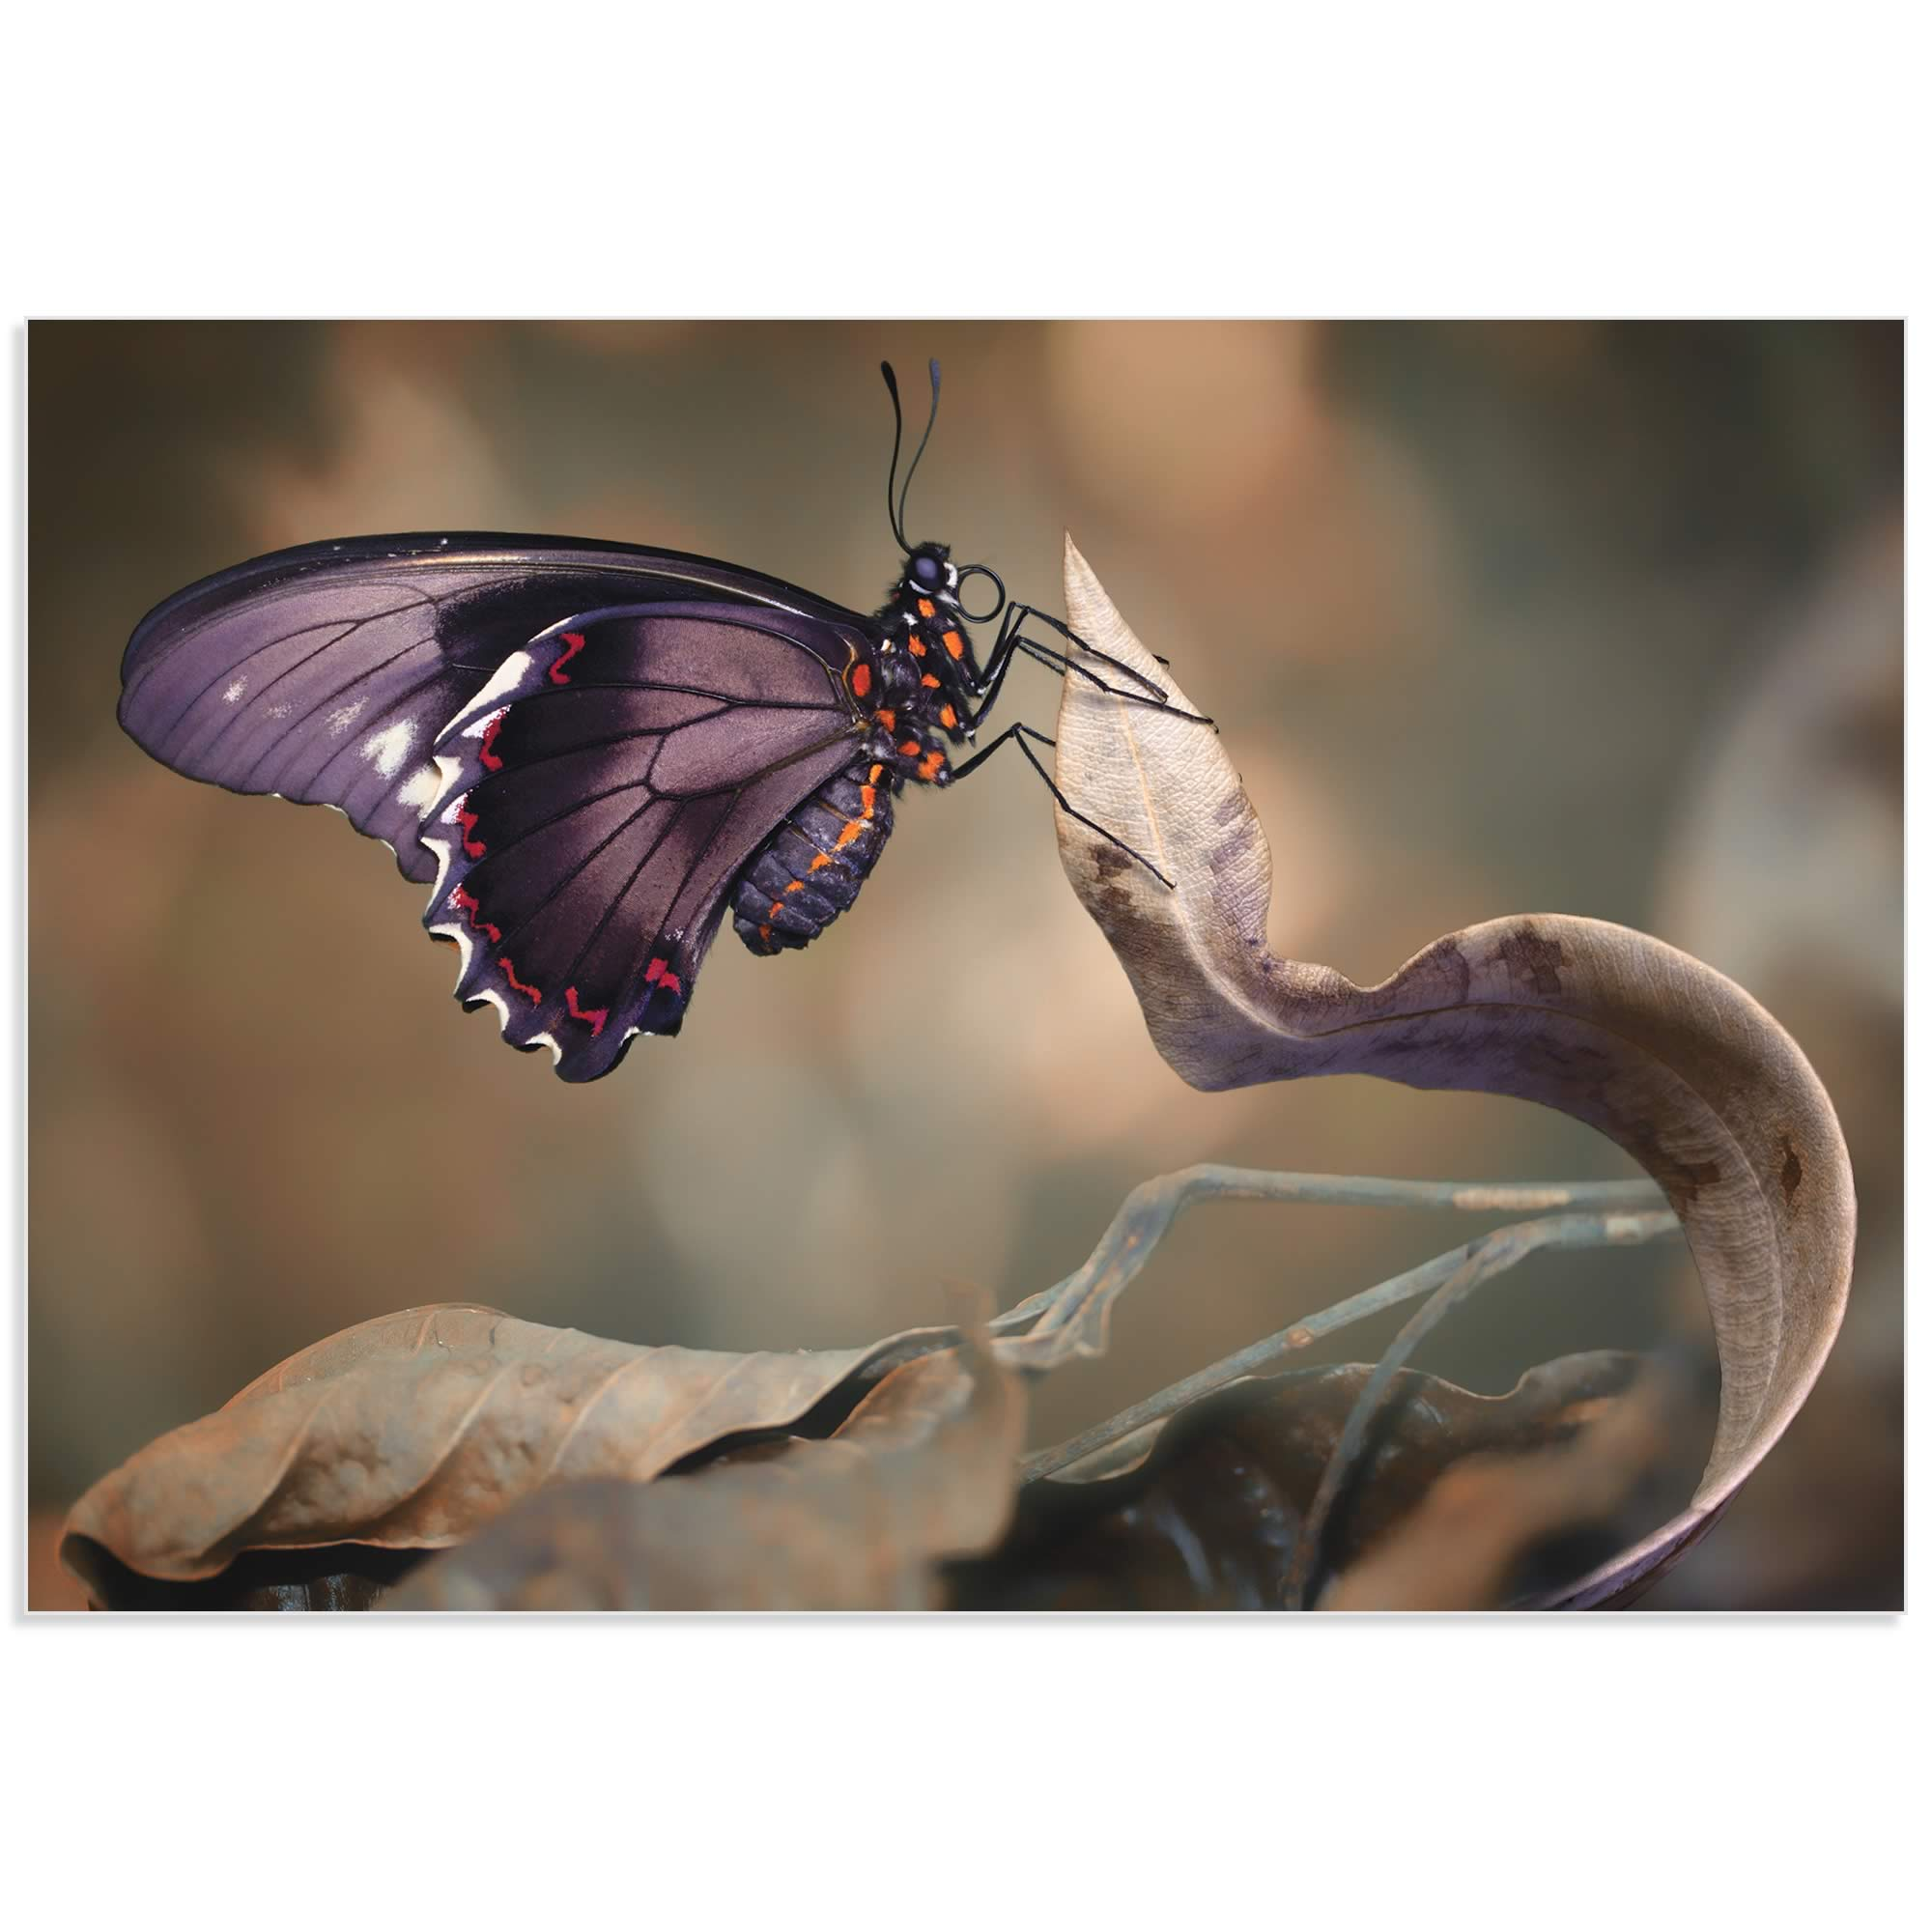 Swallowtail Butterfly by Jimmy Hoffman - Butterfly Wall Art on Metal or Acrylic - Alternate View 2